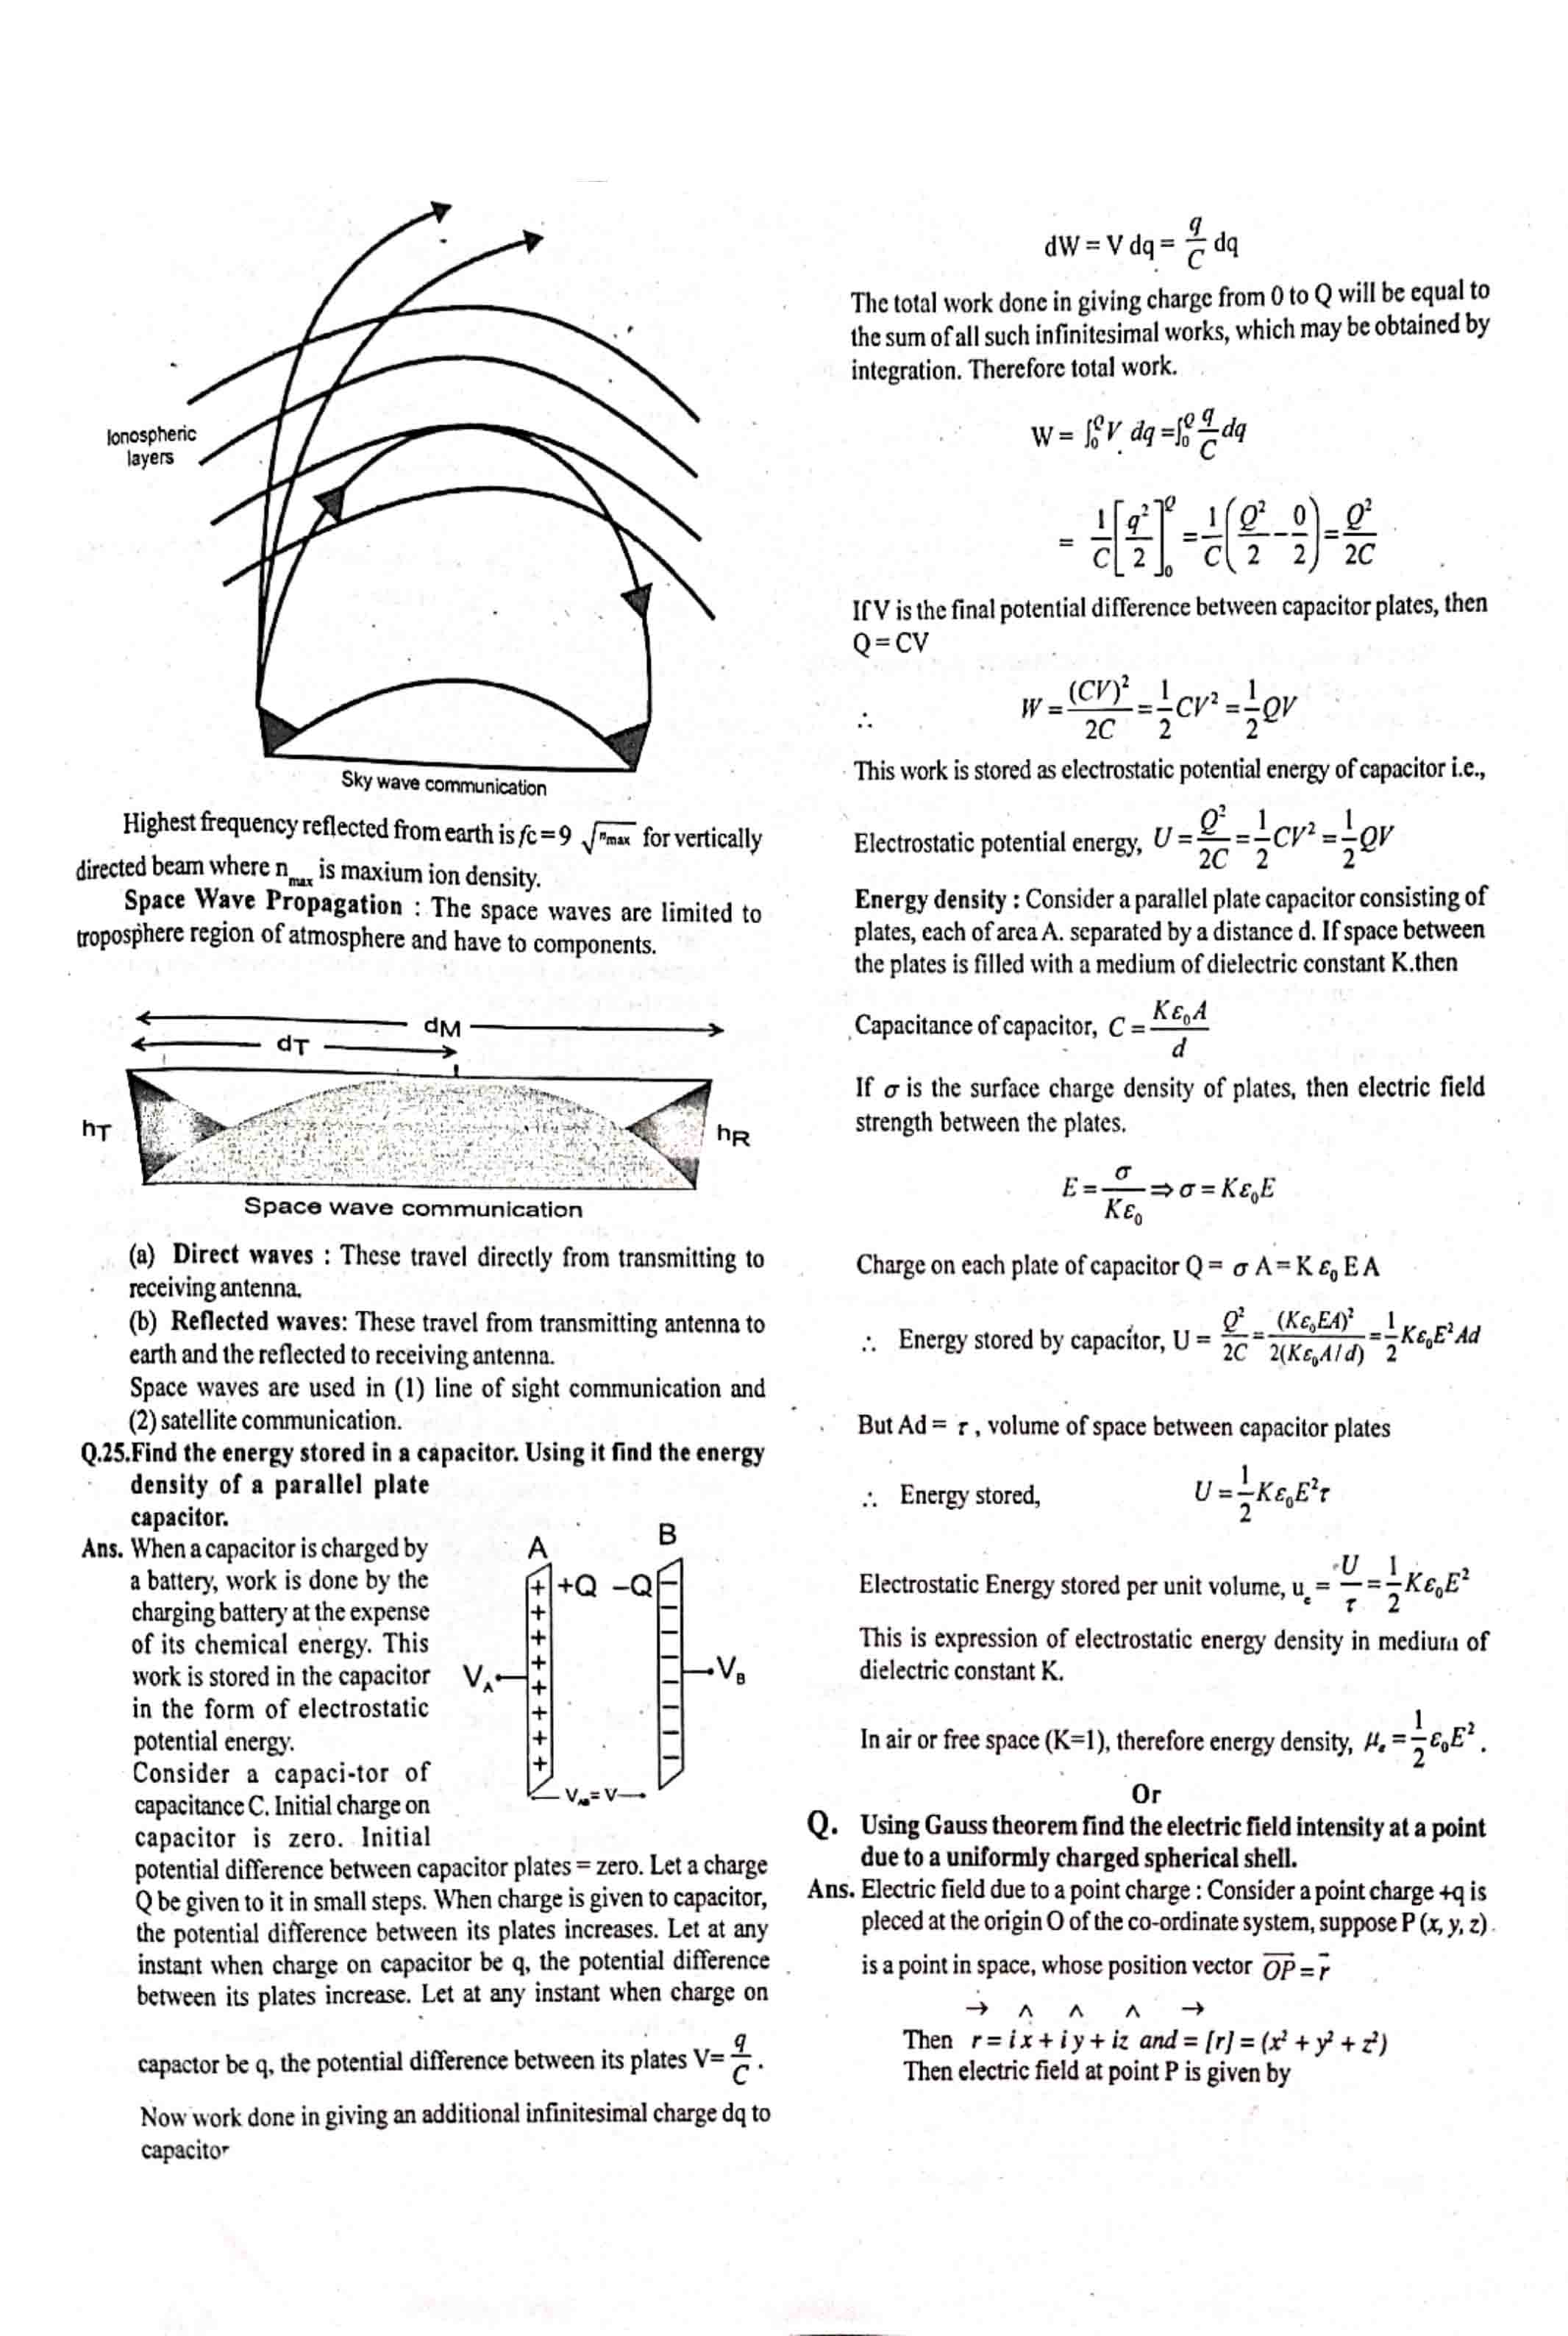 JAC Class 12 Physics 2013 Question Paper 05